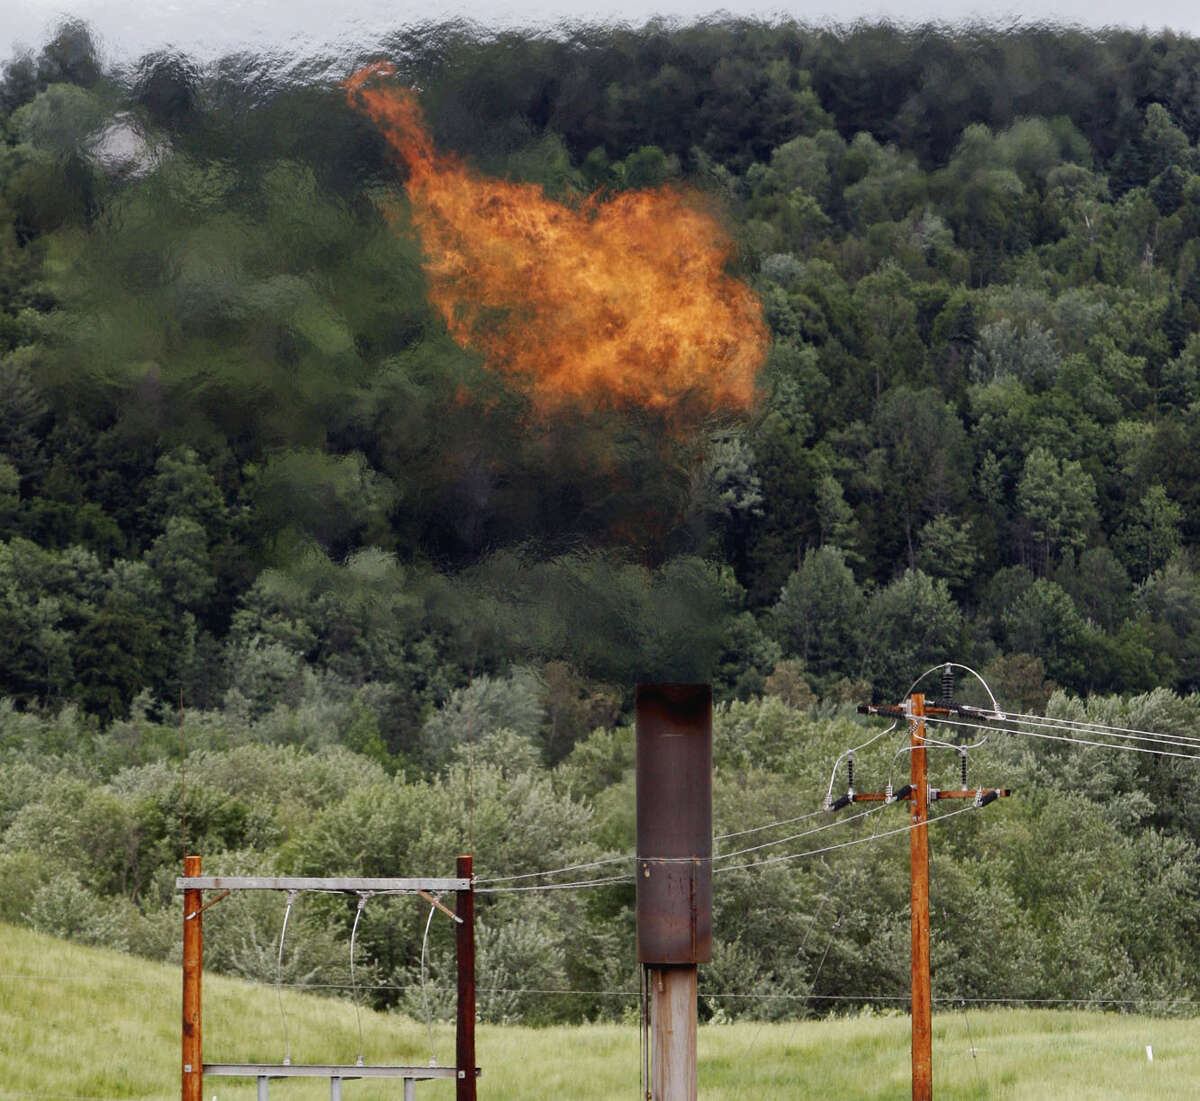 Methane burns at a landfill in Coventry, Vt. The Trump administration is delaying two Obama-era regulations aimed at restricting harmful methane emissions from oil and gas production.